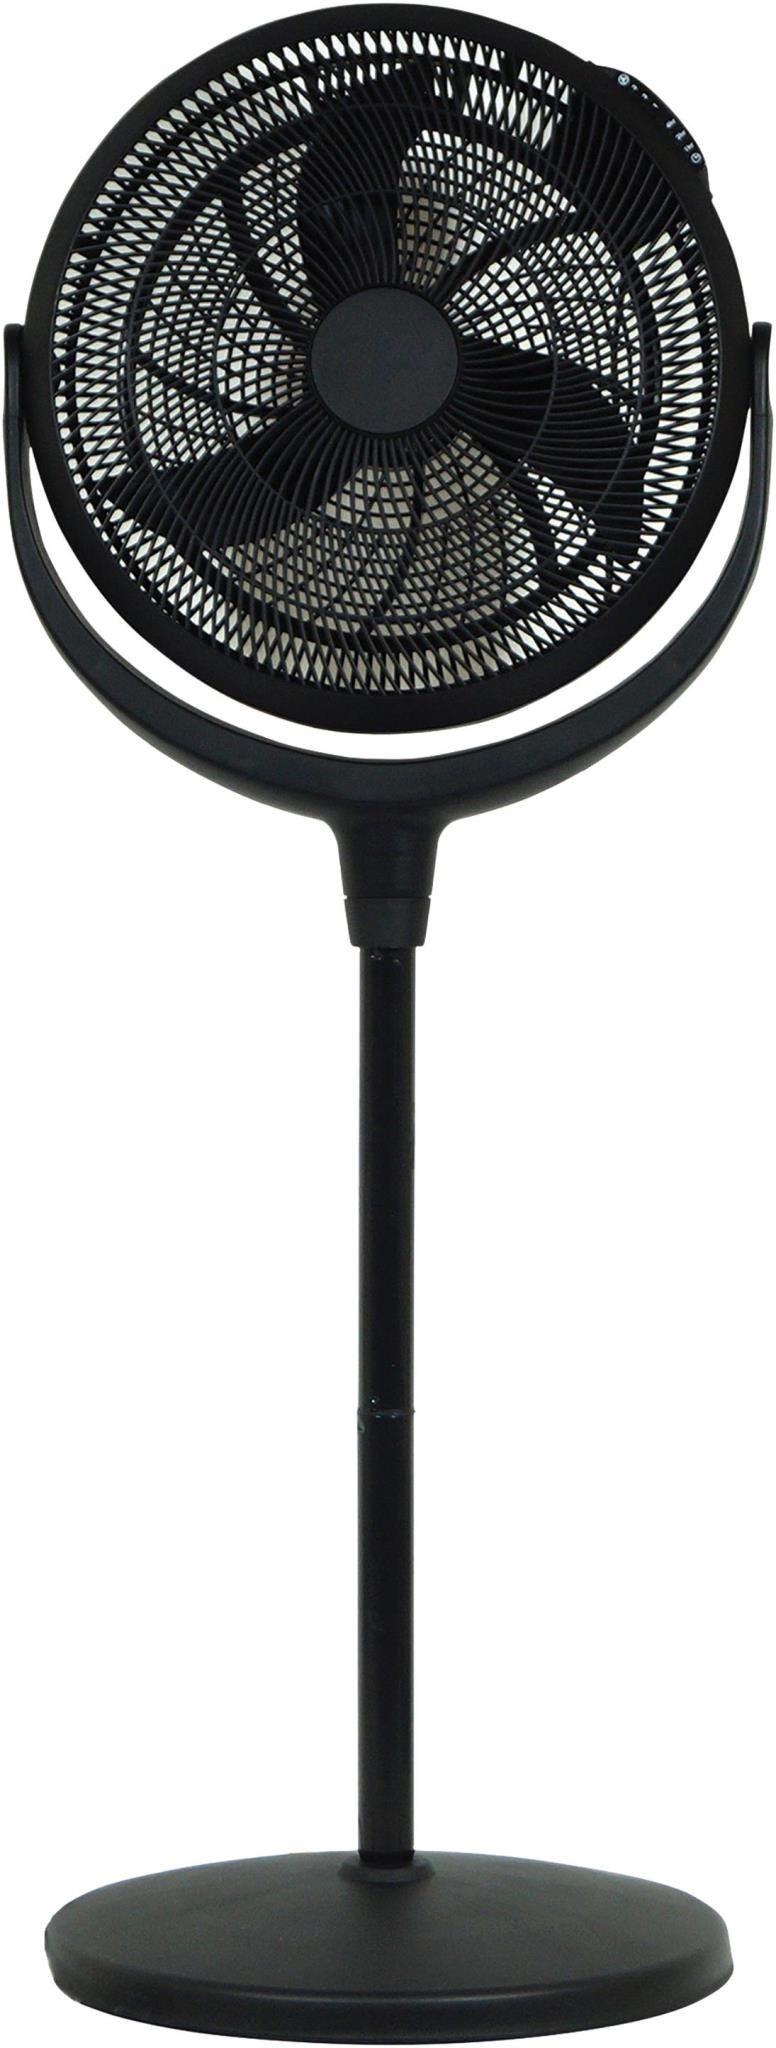 "Prem-i-air 16"" Power Stand Fan with Timer    Remote Control - Black"